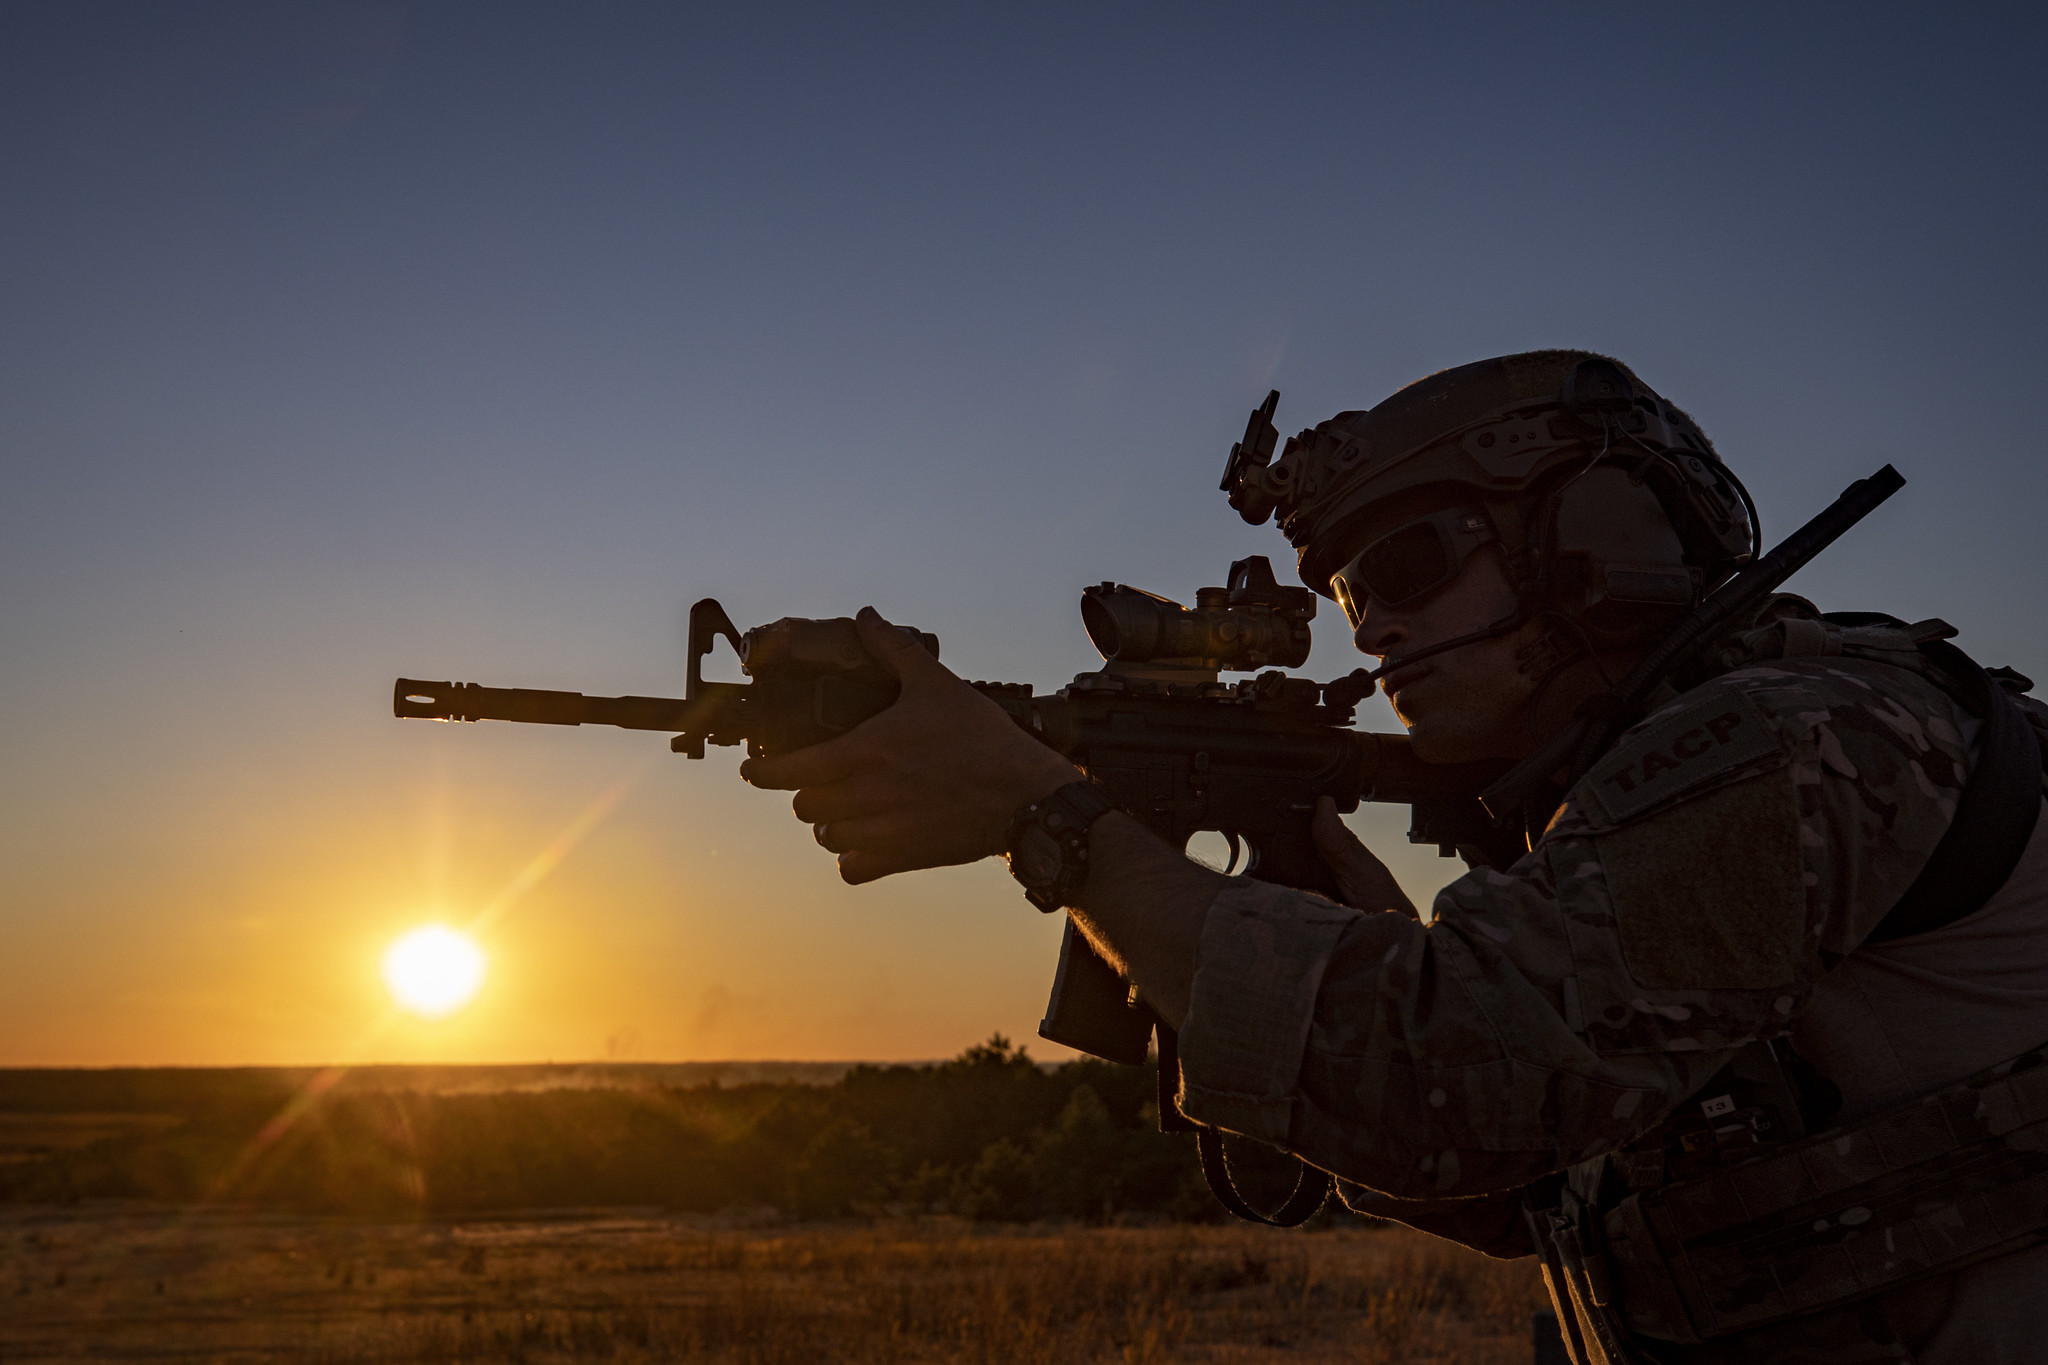 A U.S. Air Force special warfare airman with the New Jersey Air National Guard's 227th Air Support Operations Squadron moves tactically during a live-fire training mission with Marine Light Attack Helicopter Squadron 773 on Joint Base McGuire-Dix-Lakehurst, N.J., Oct. 24, 2019. (Master Sgt. Matt Hecht/Air National Guard)